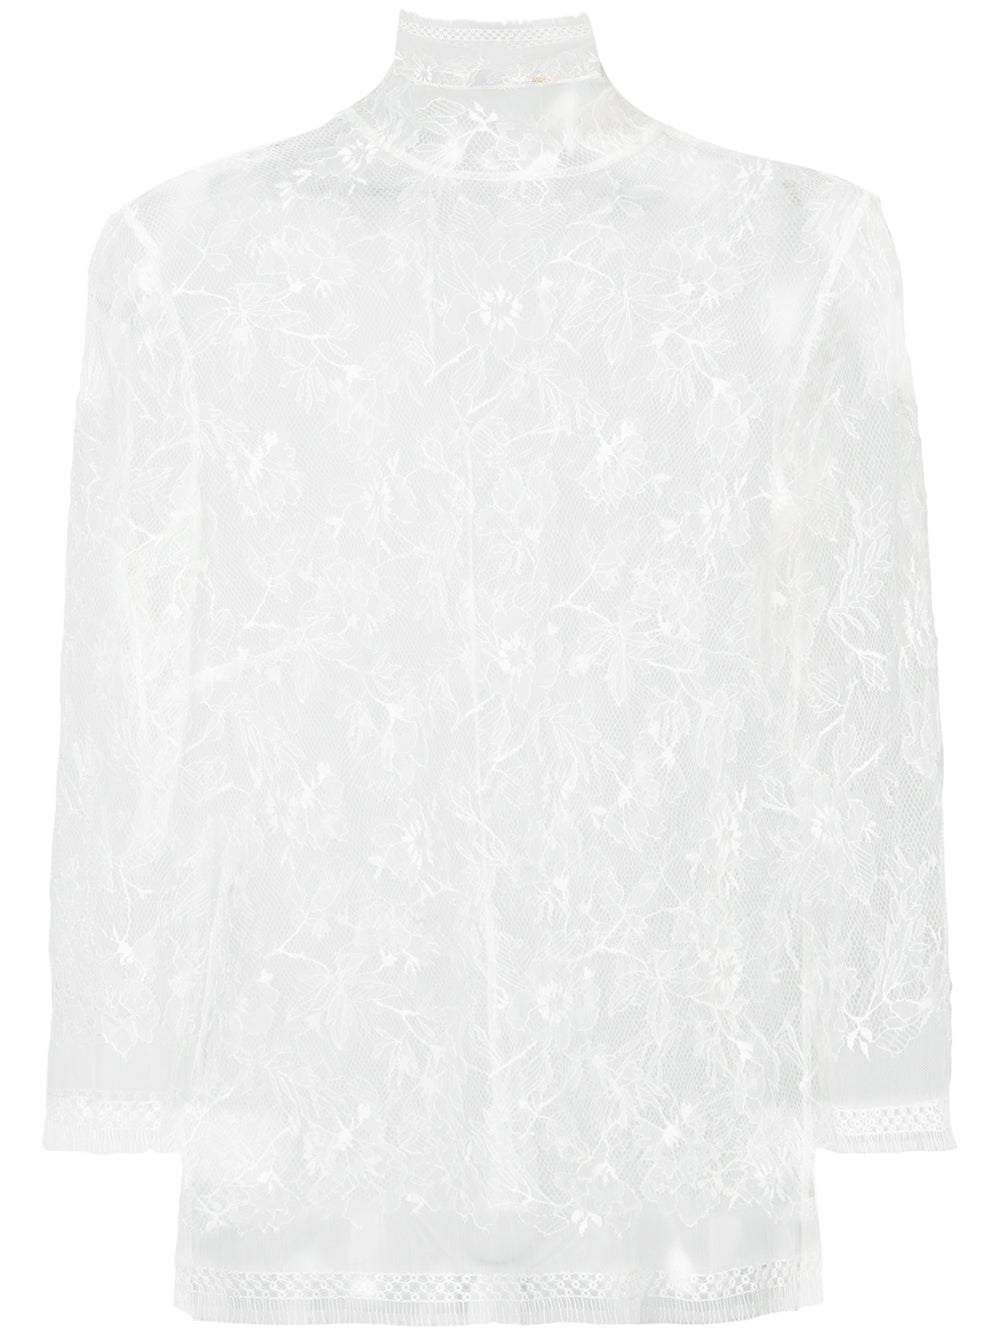 CHANTILLY LACE LONG SLEEVE TURTLENECK